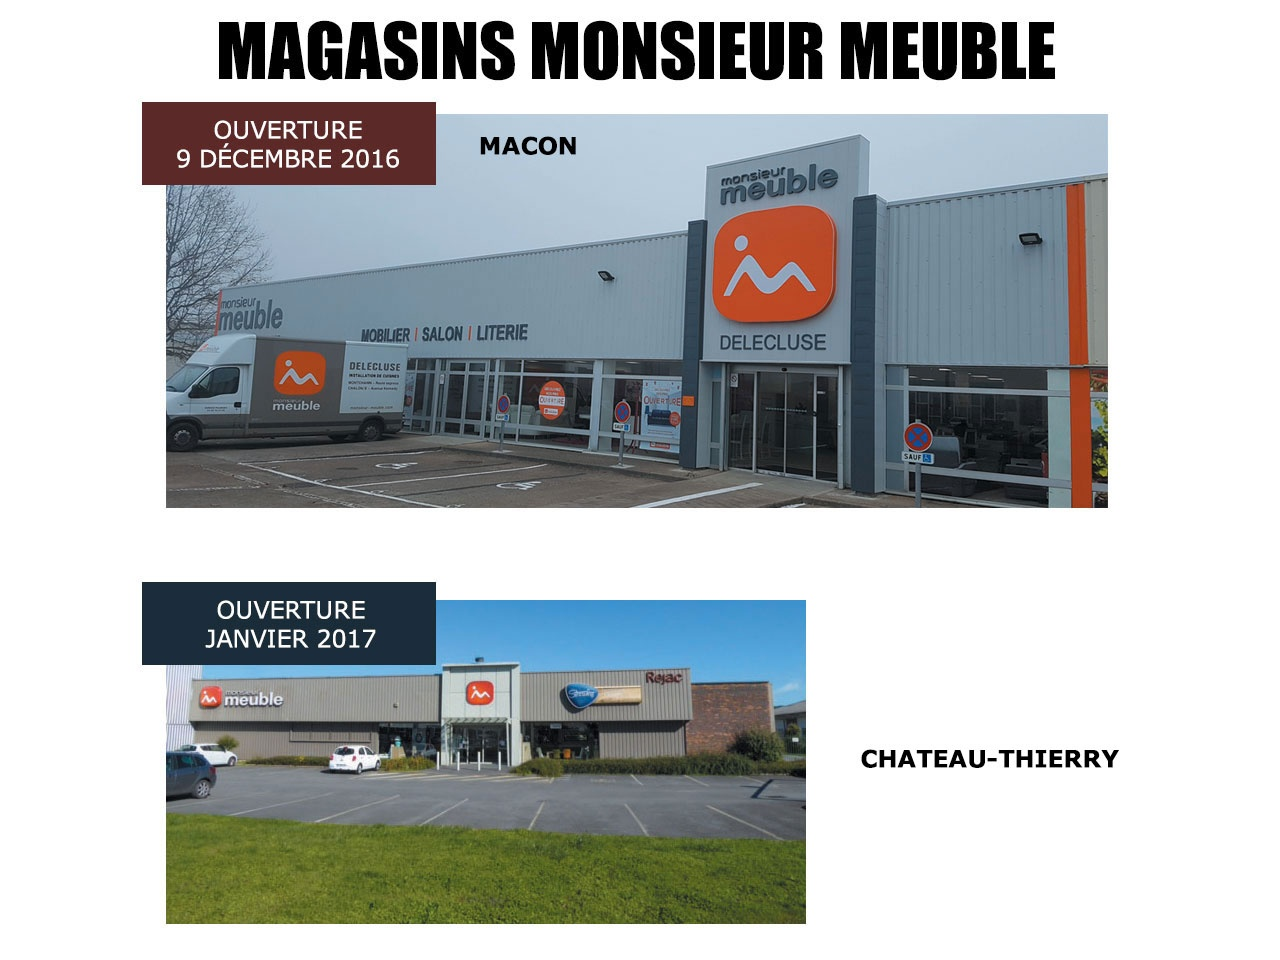 magasin meubles macon trendy chaise et fauteuil de jardin with magasin meubles macon trendy. Black Bedroom Furniture Sets. Home Design Ideas